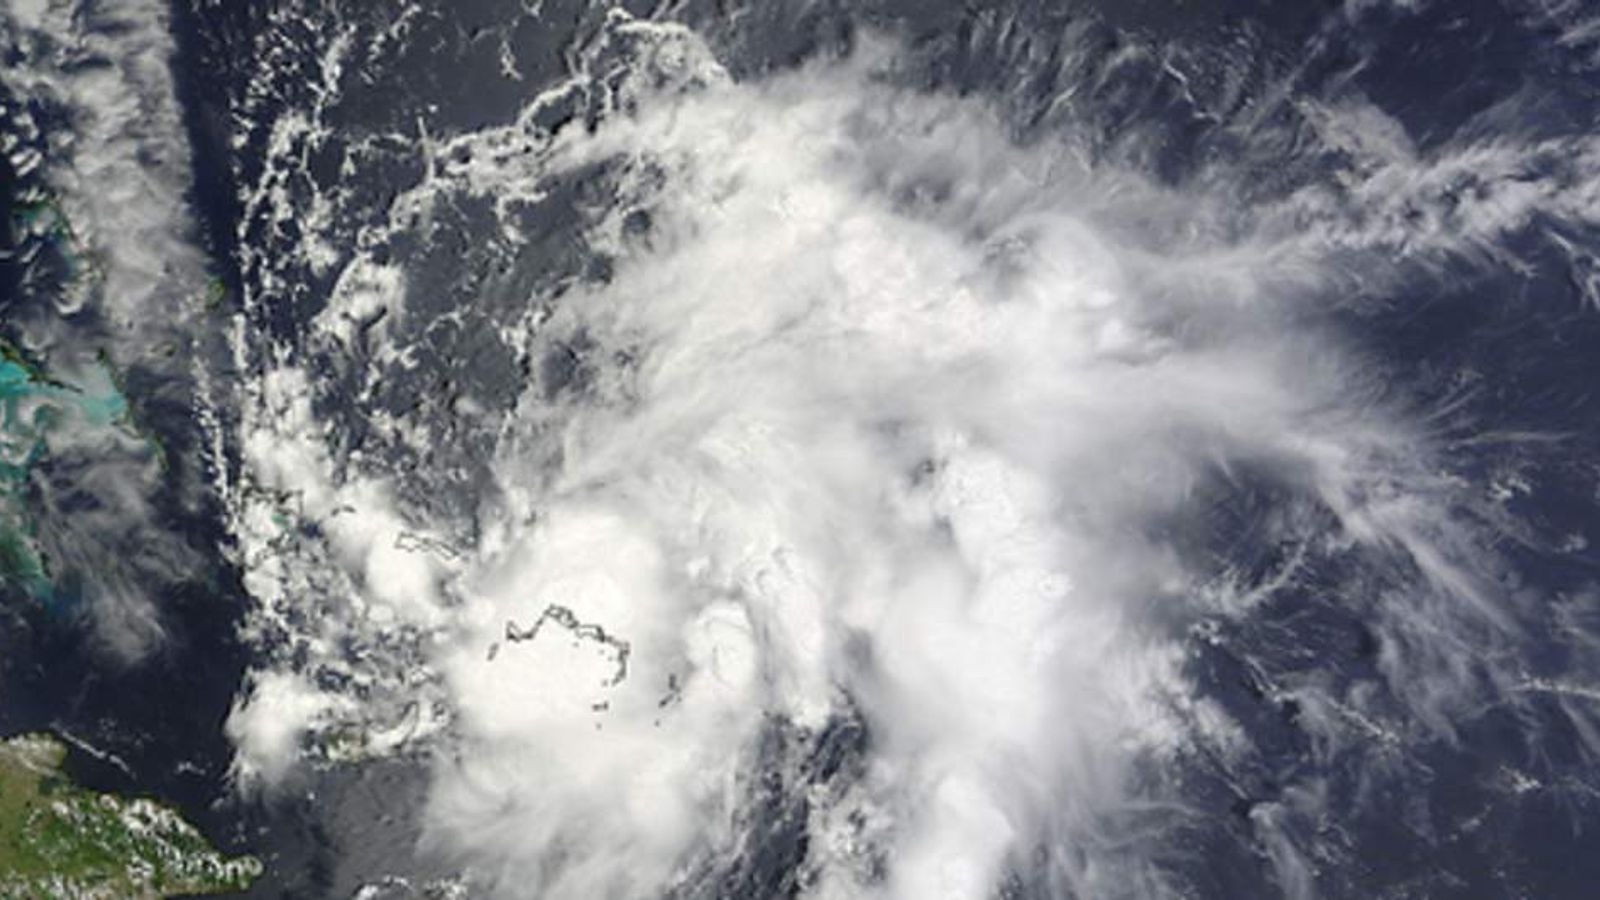 NASA picture of Hurricane Bertha (upgraded from Tropical Storm)